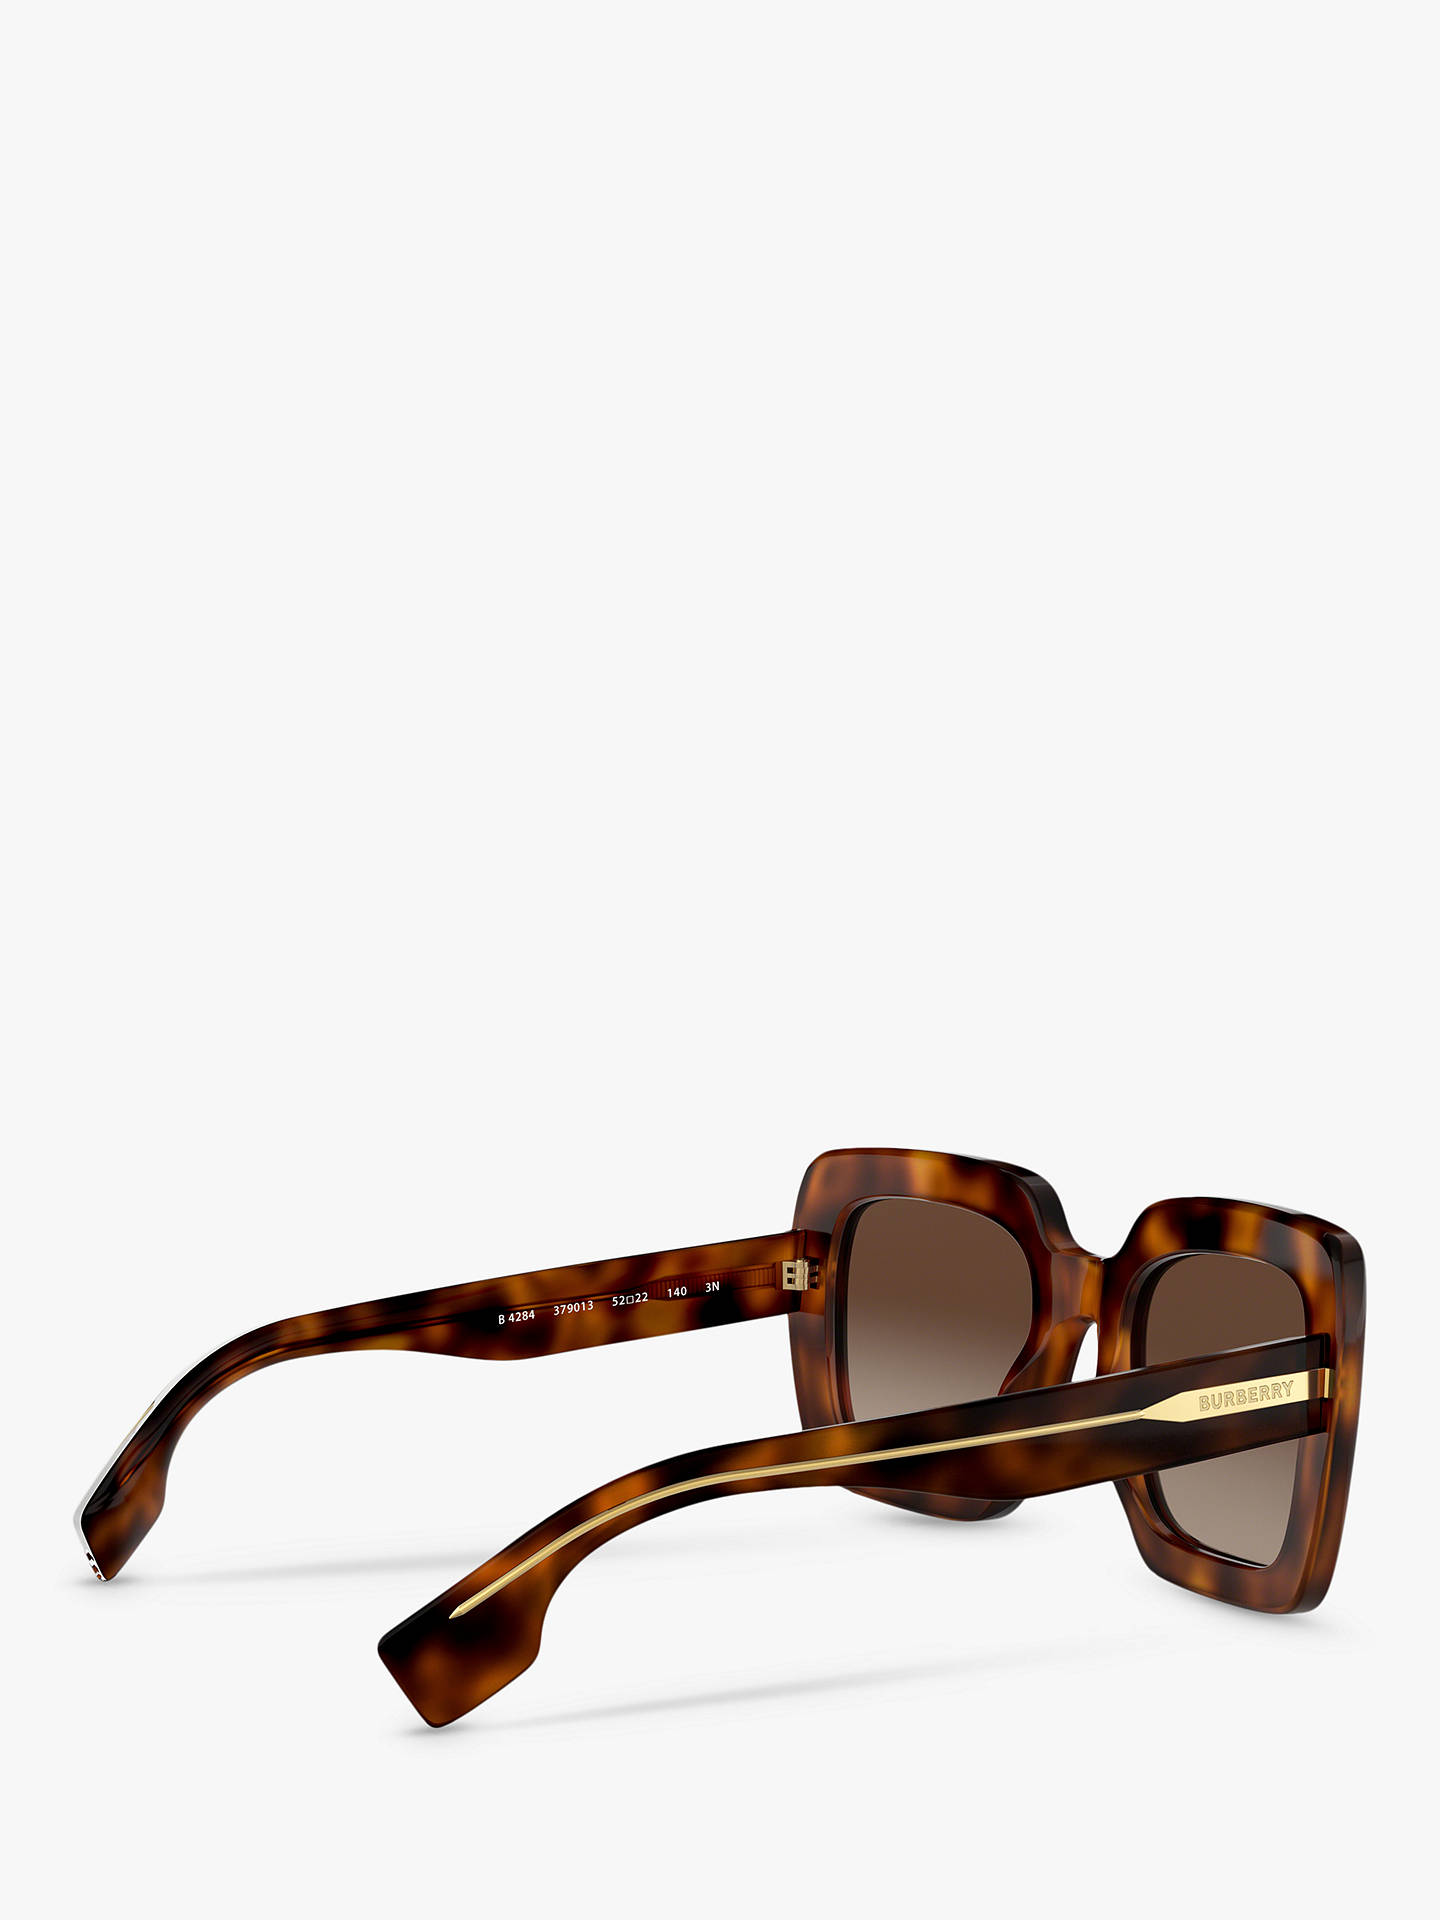 32335acdc51 Buy Burberry BE4284 Women s Chunky Square Sunglasses